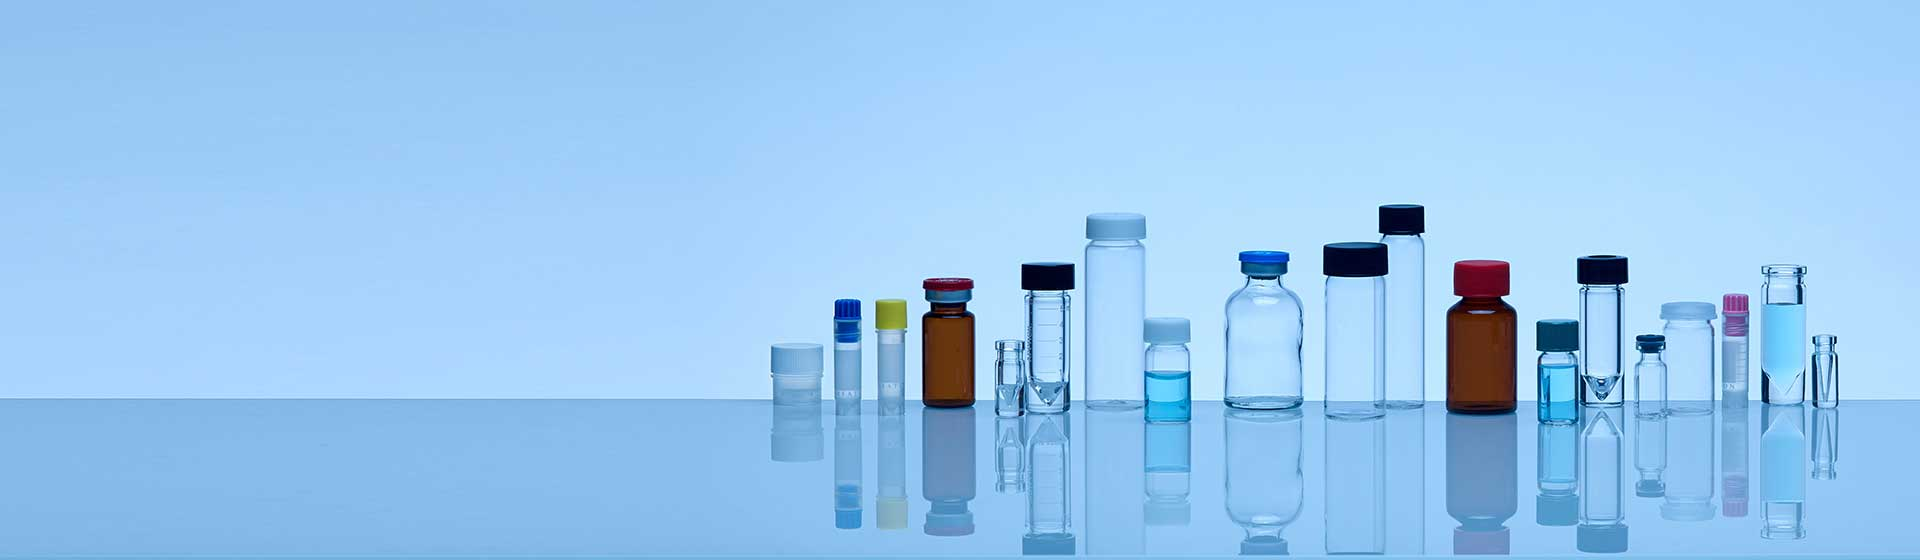 ewatertest vials.jpg